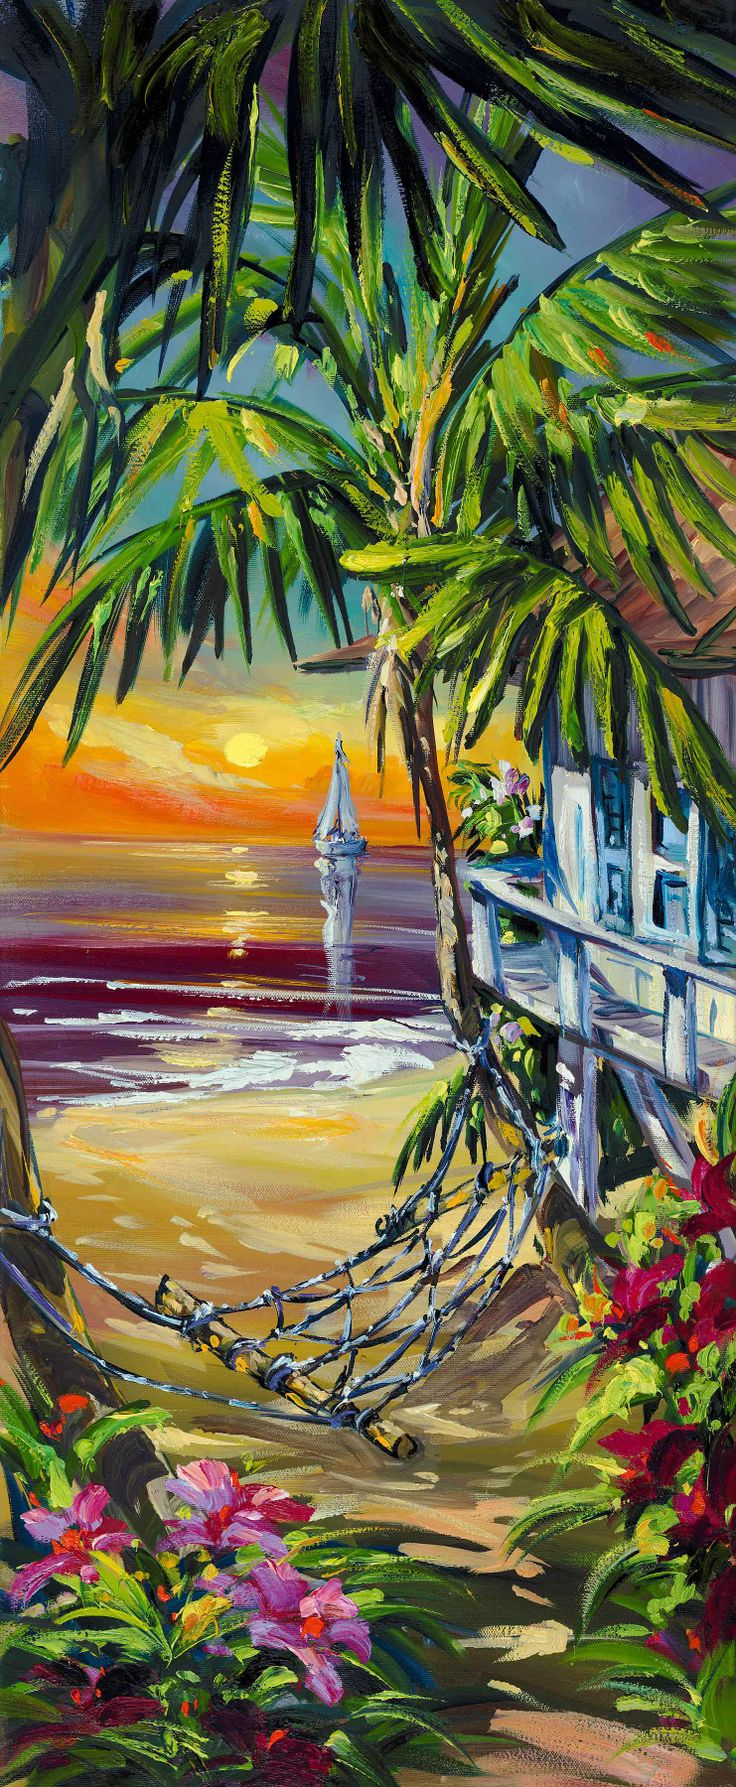 """Sunset Bungalow"", by Steve Barton Size: 14"" x 34"" Medium: Giclee on Canvas - Gallery Wrap Edition: 50  #art #hawaii"